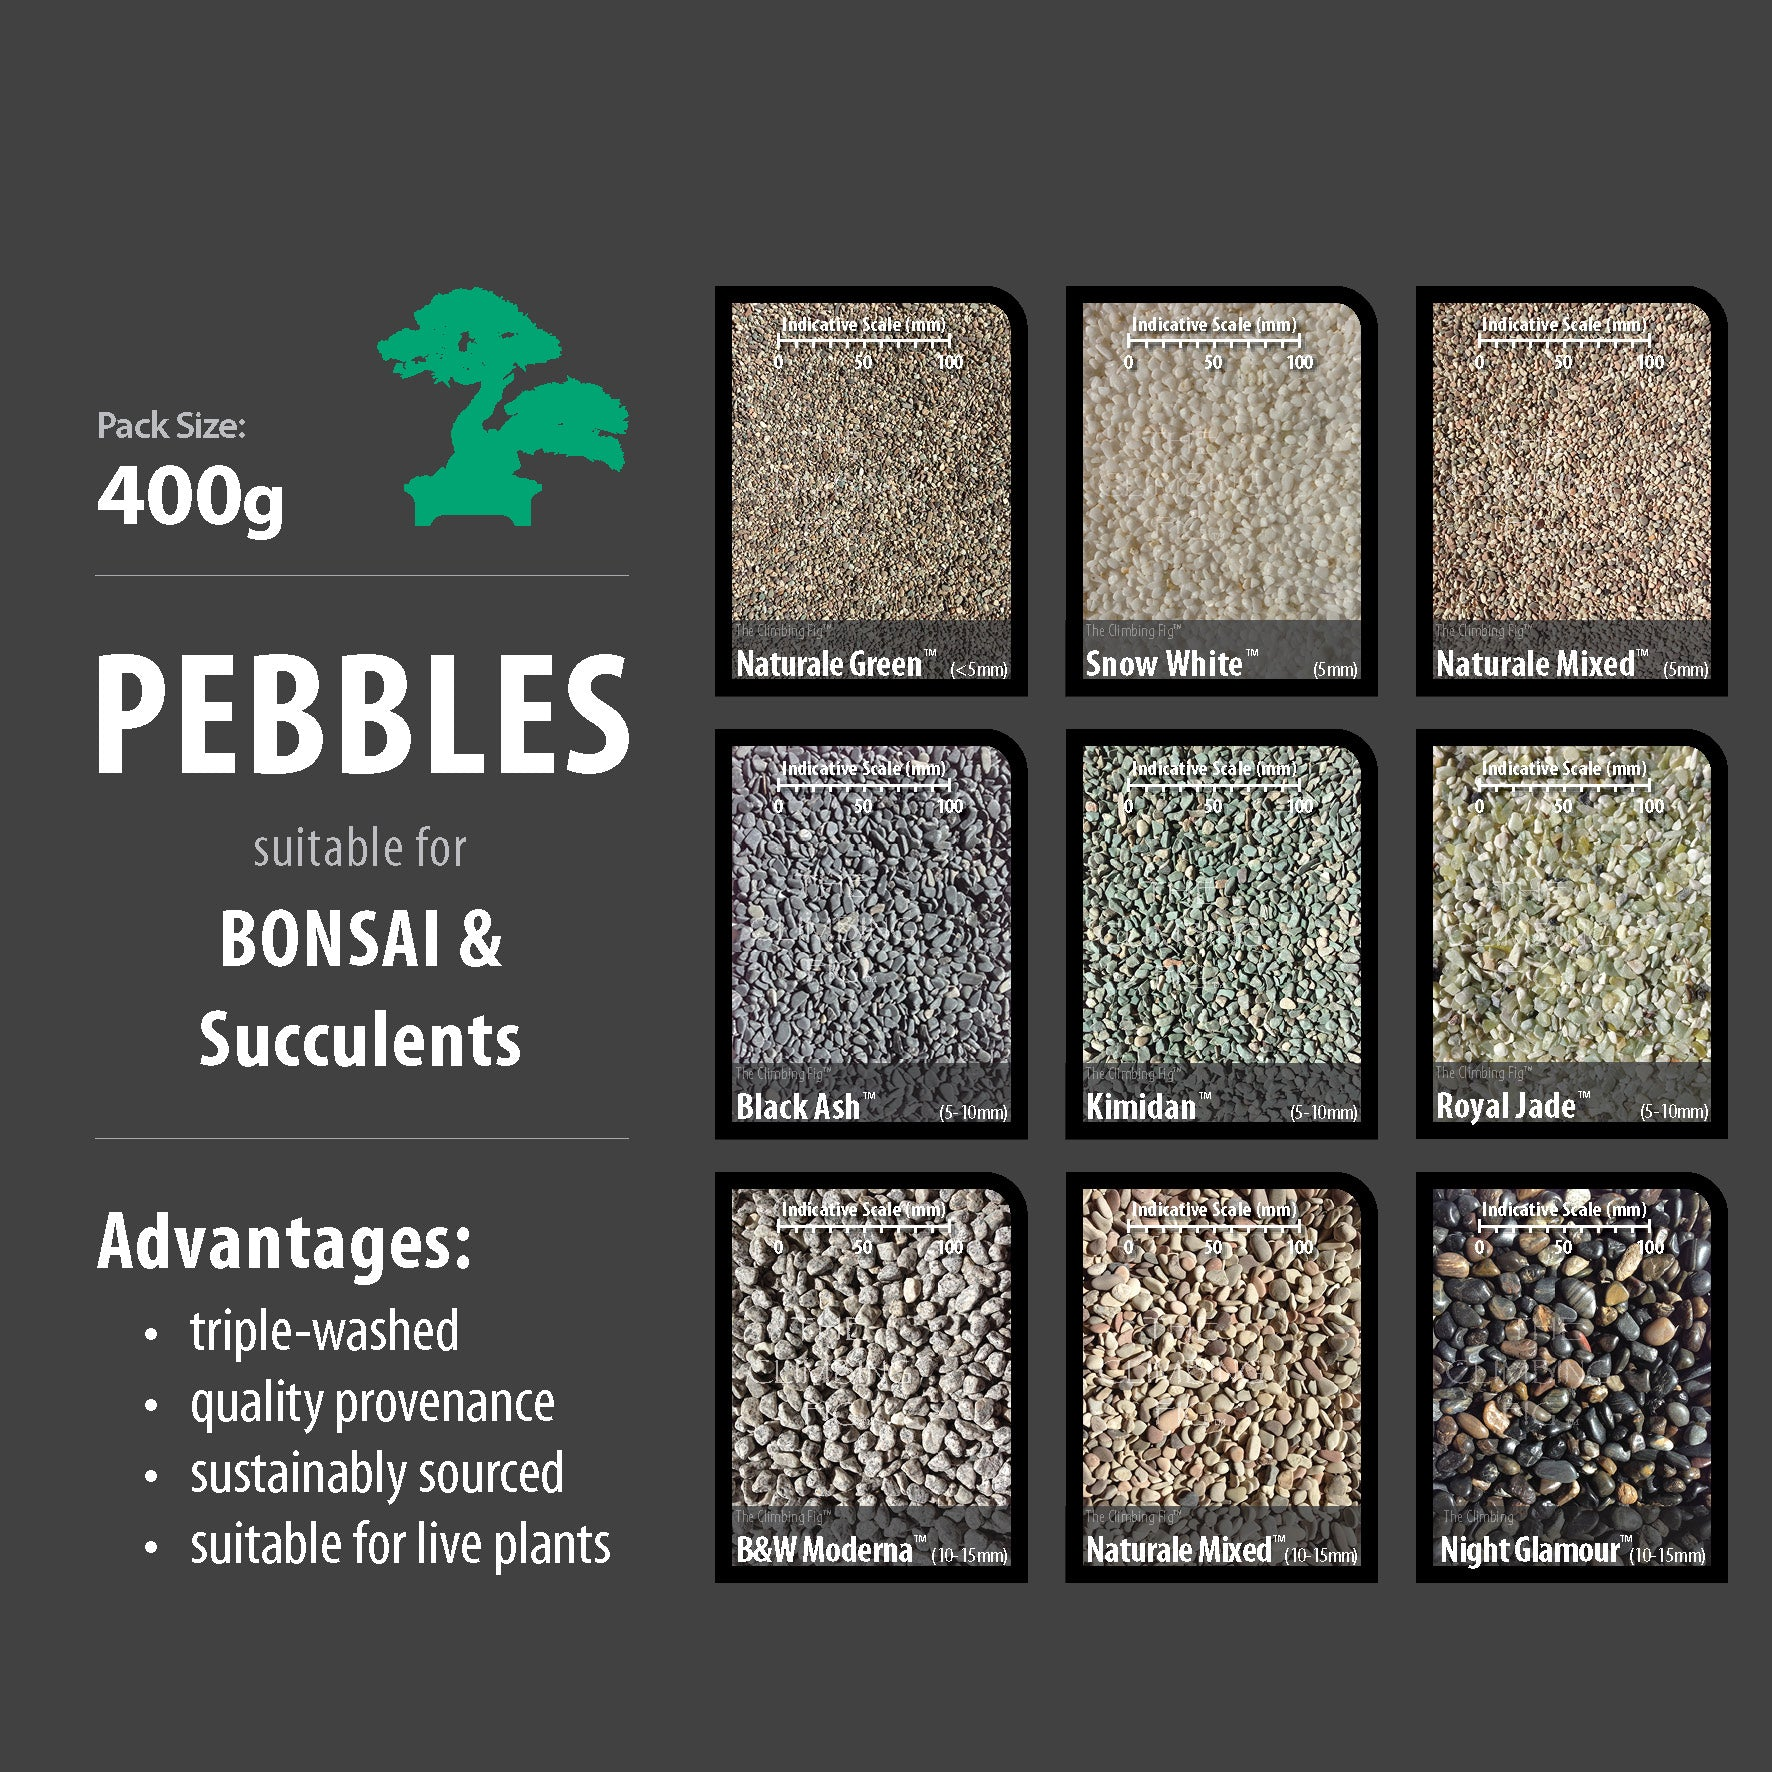 400g Pebbles suitable for Bonsai, Succulents & Terrariums